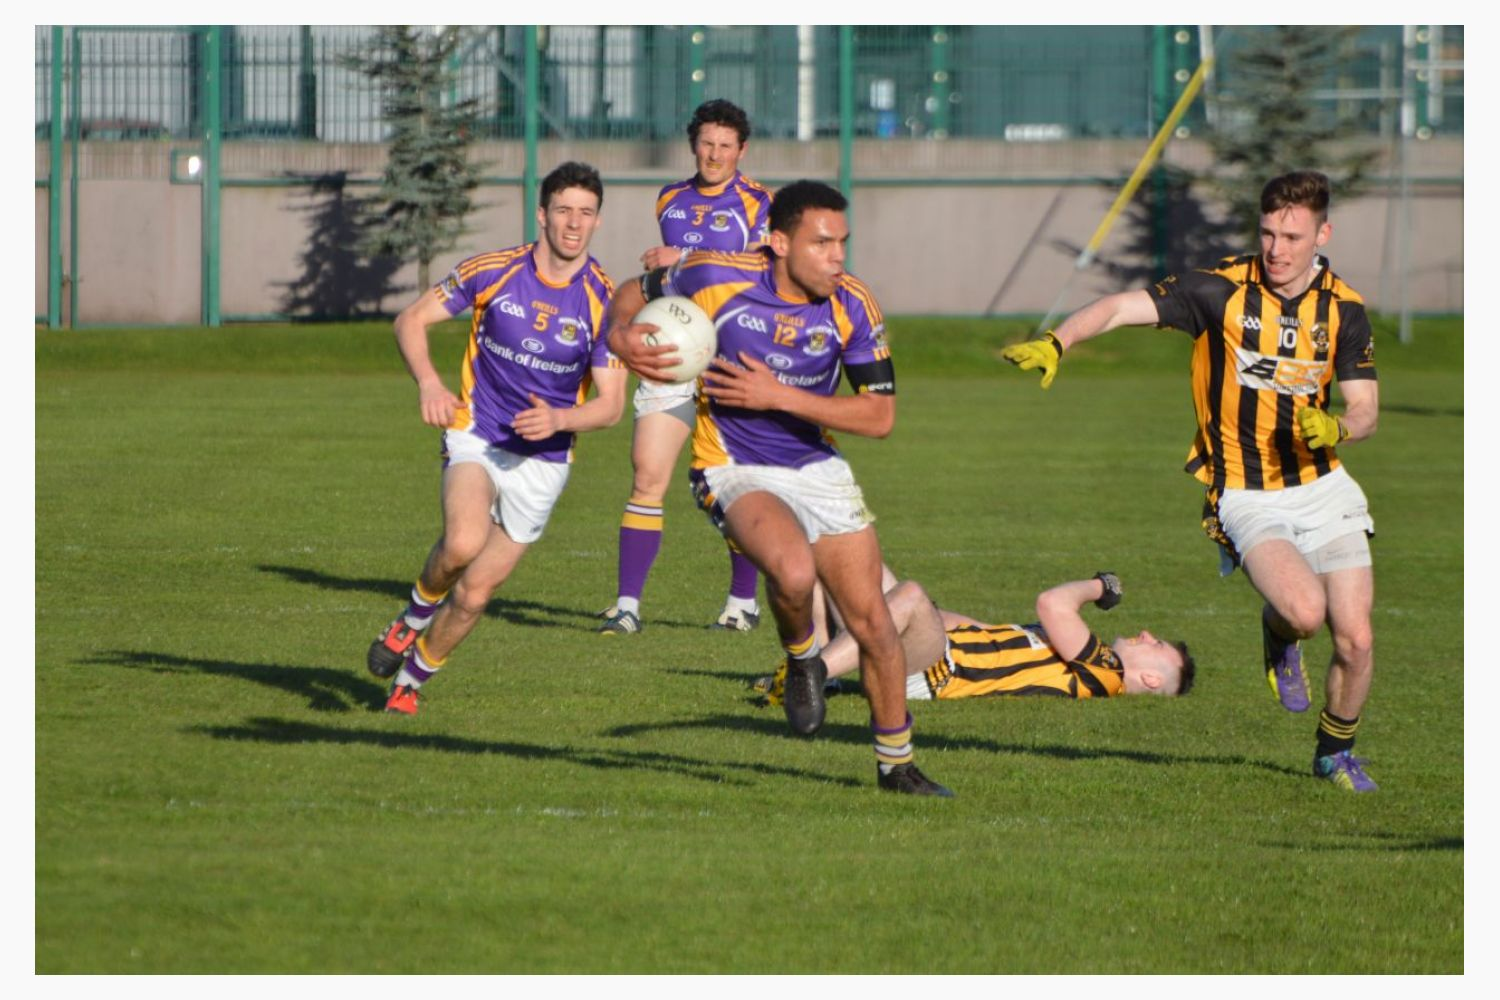 Championship Action this Weekend - Senior & Minor Football Teams